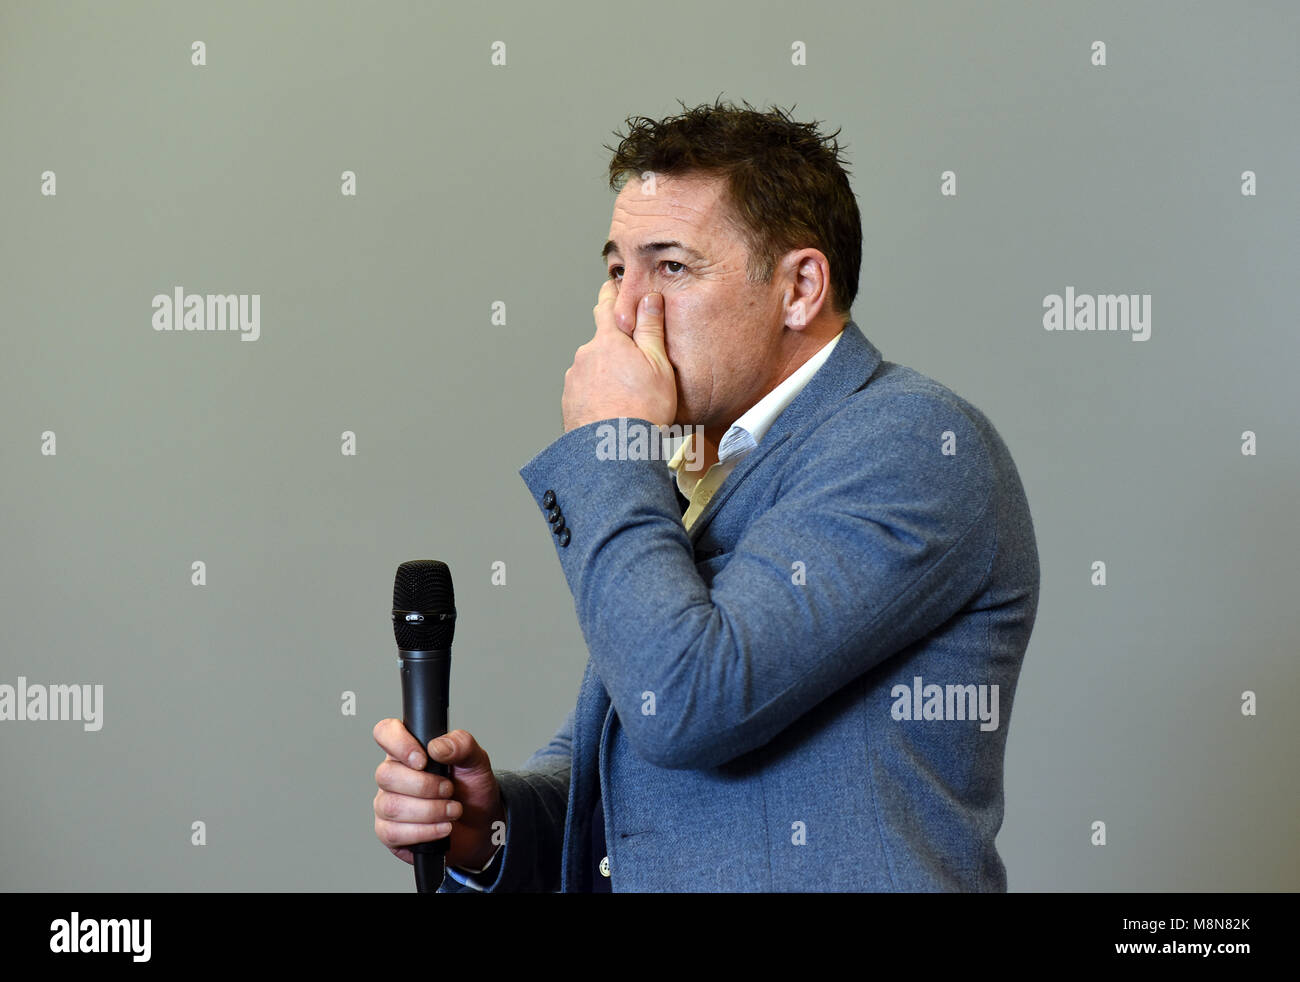 Former footballer Dean Saunders after dinner speaker - Stock Image